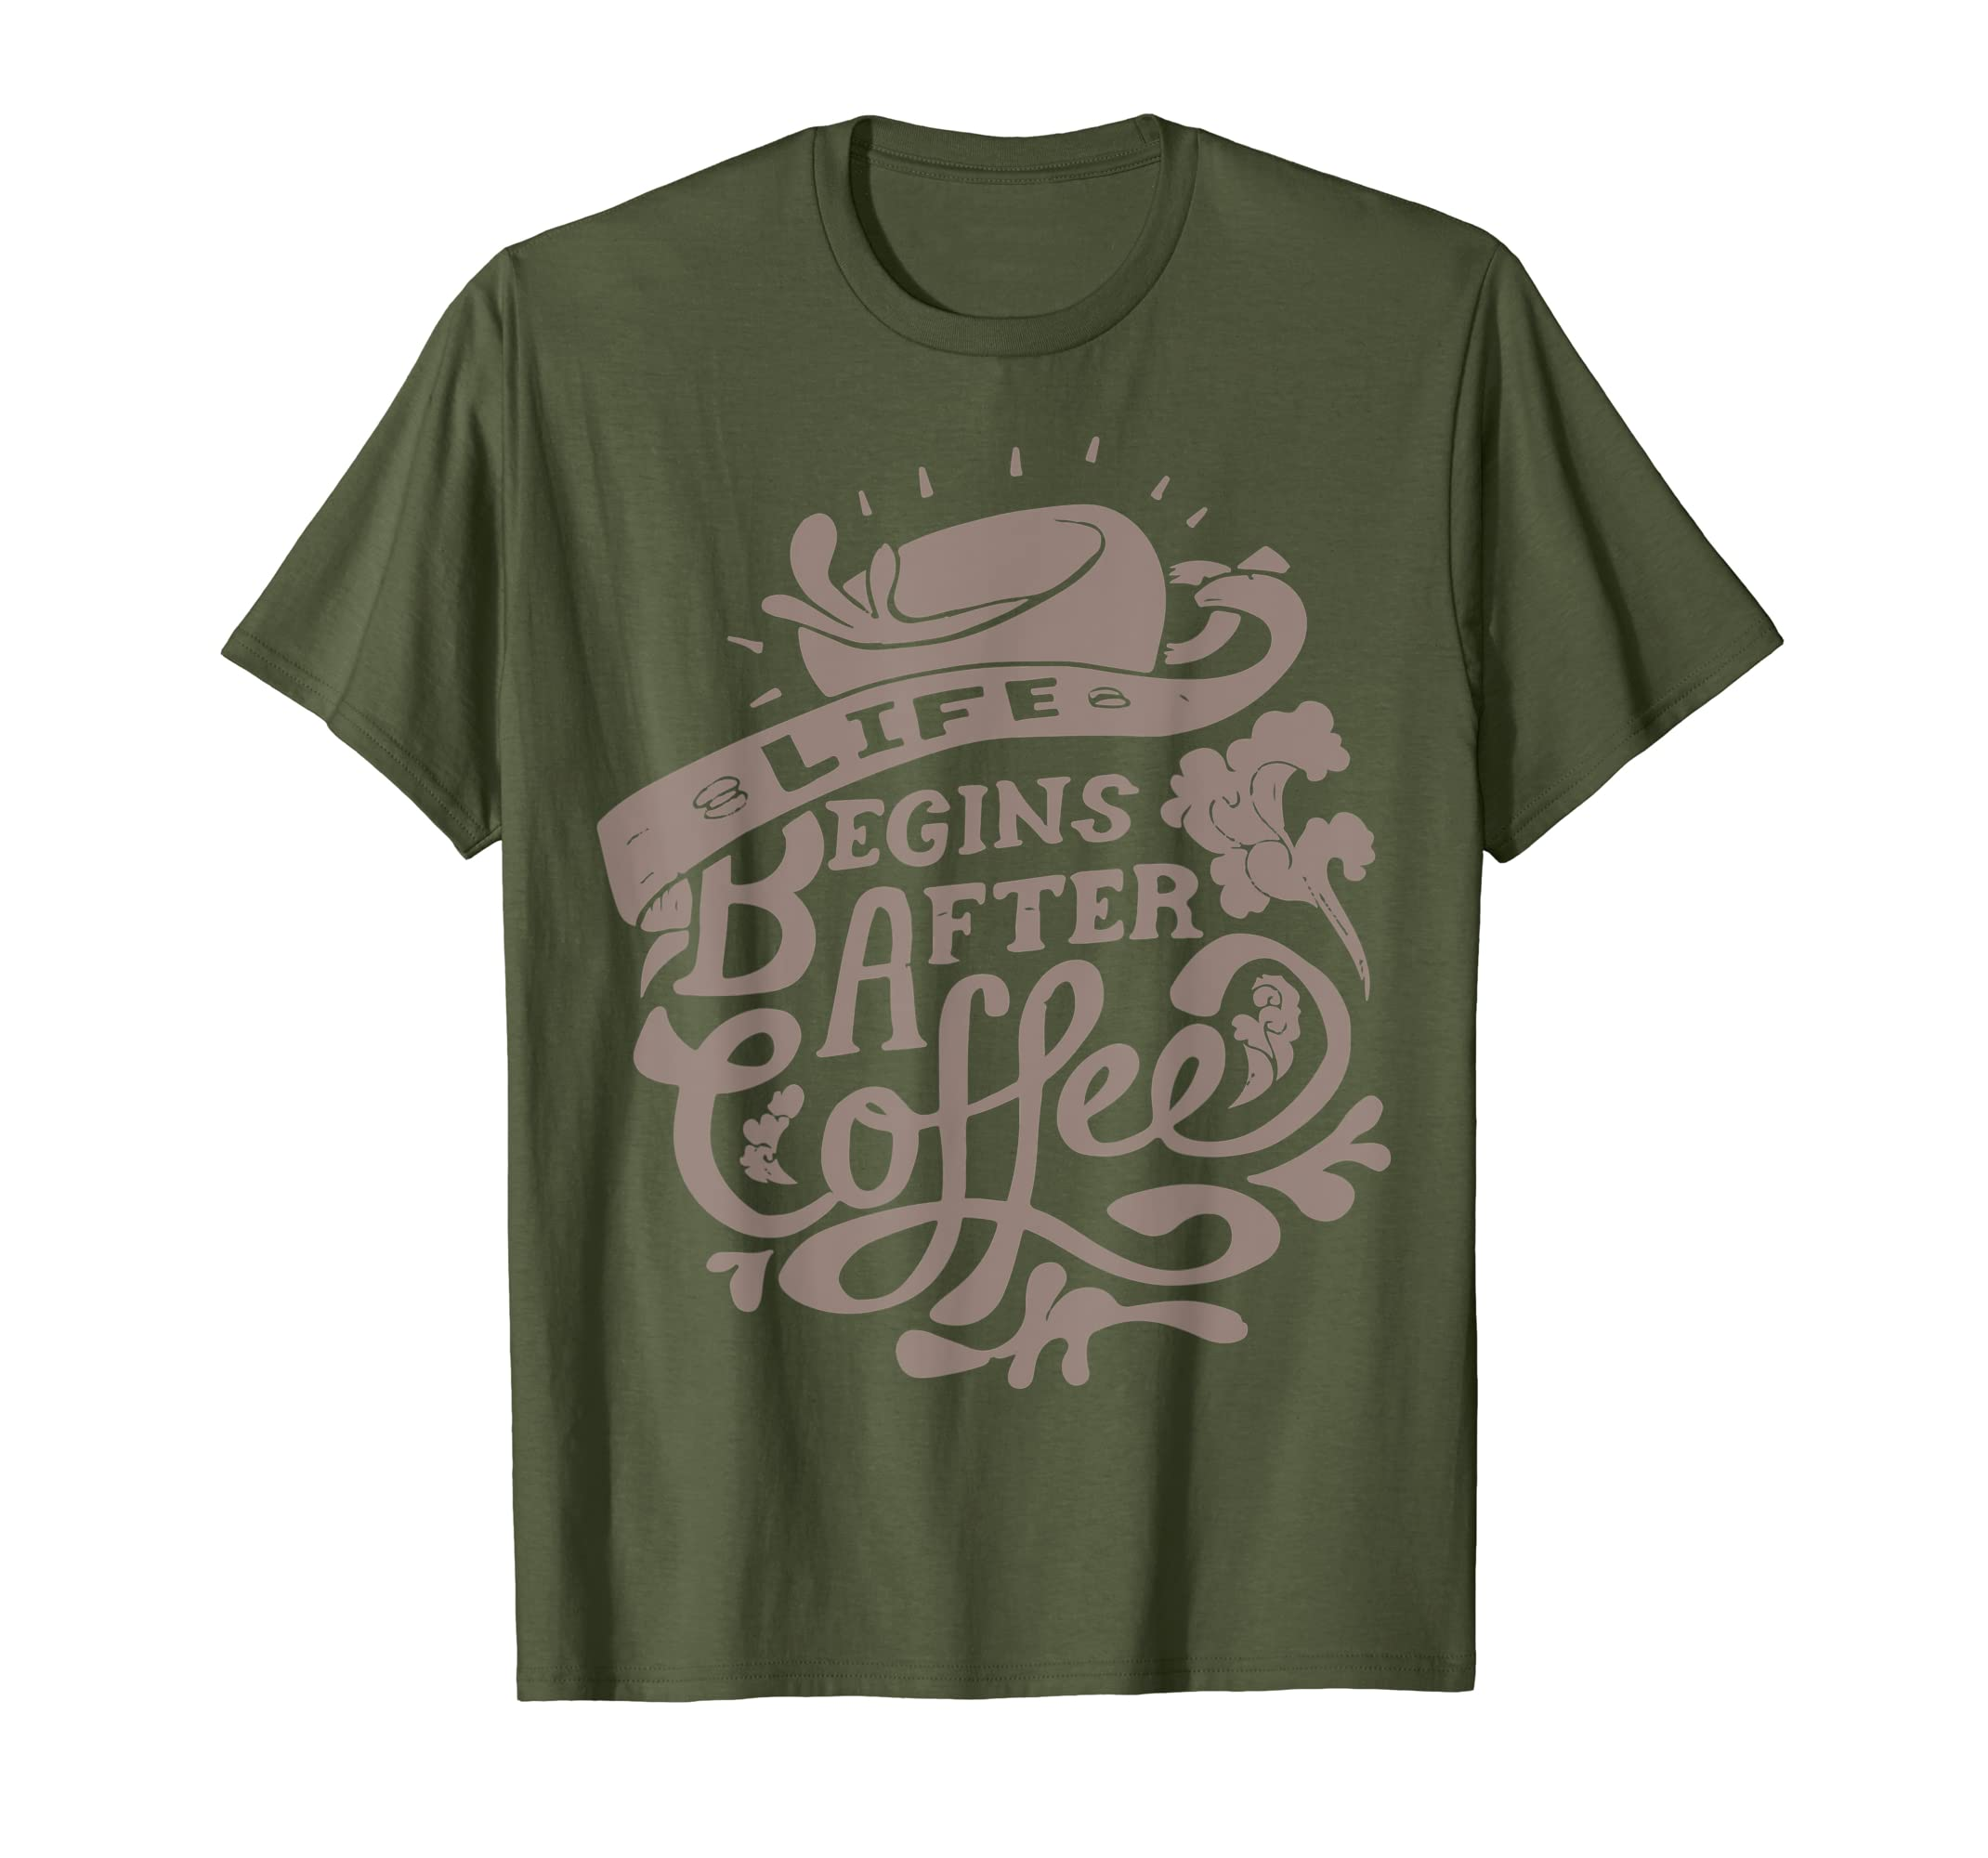 631413e46e3b02 Amazon.com  Life Begins After Coffee T-Shirt Caffeine Lover Unisex Tee   Clothing